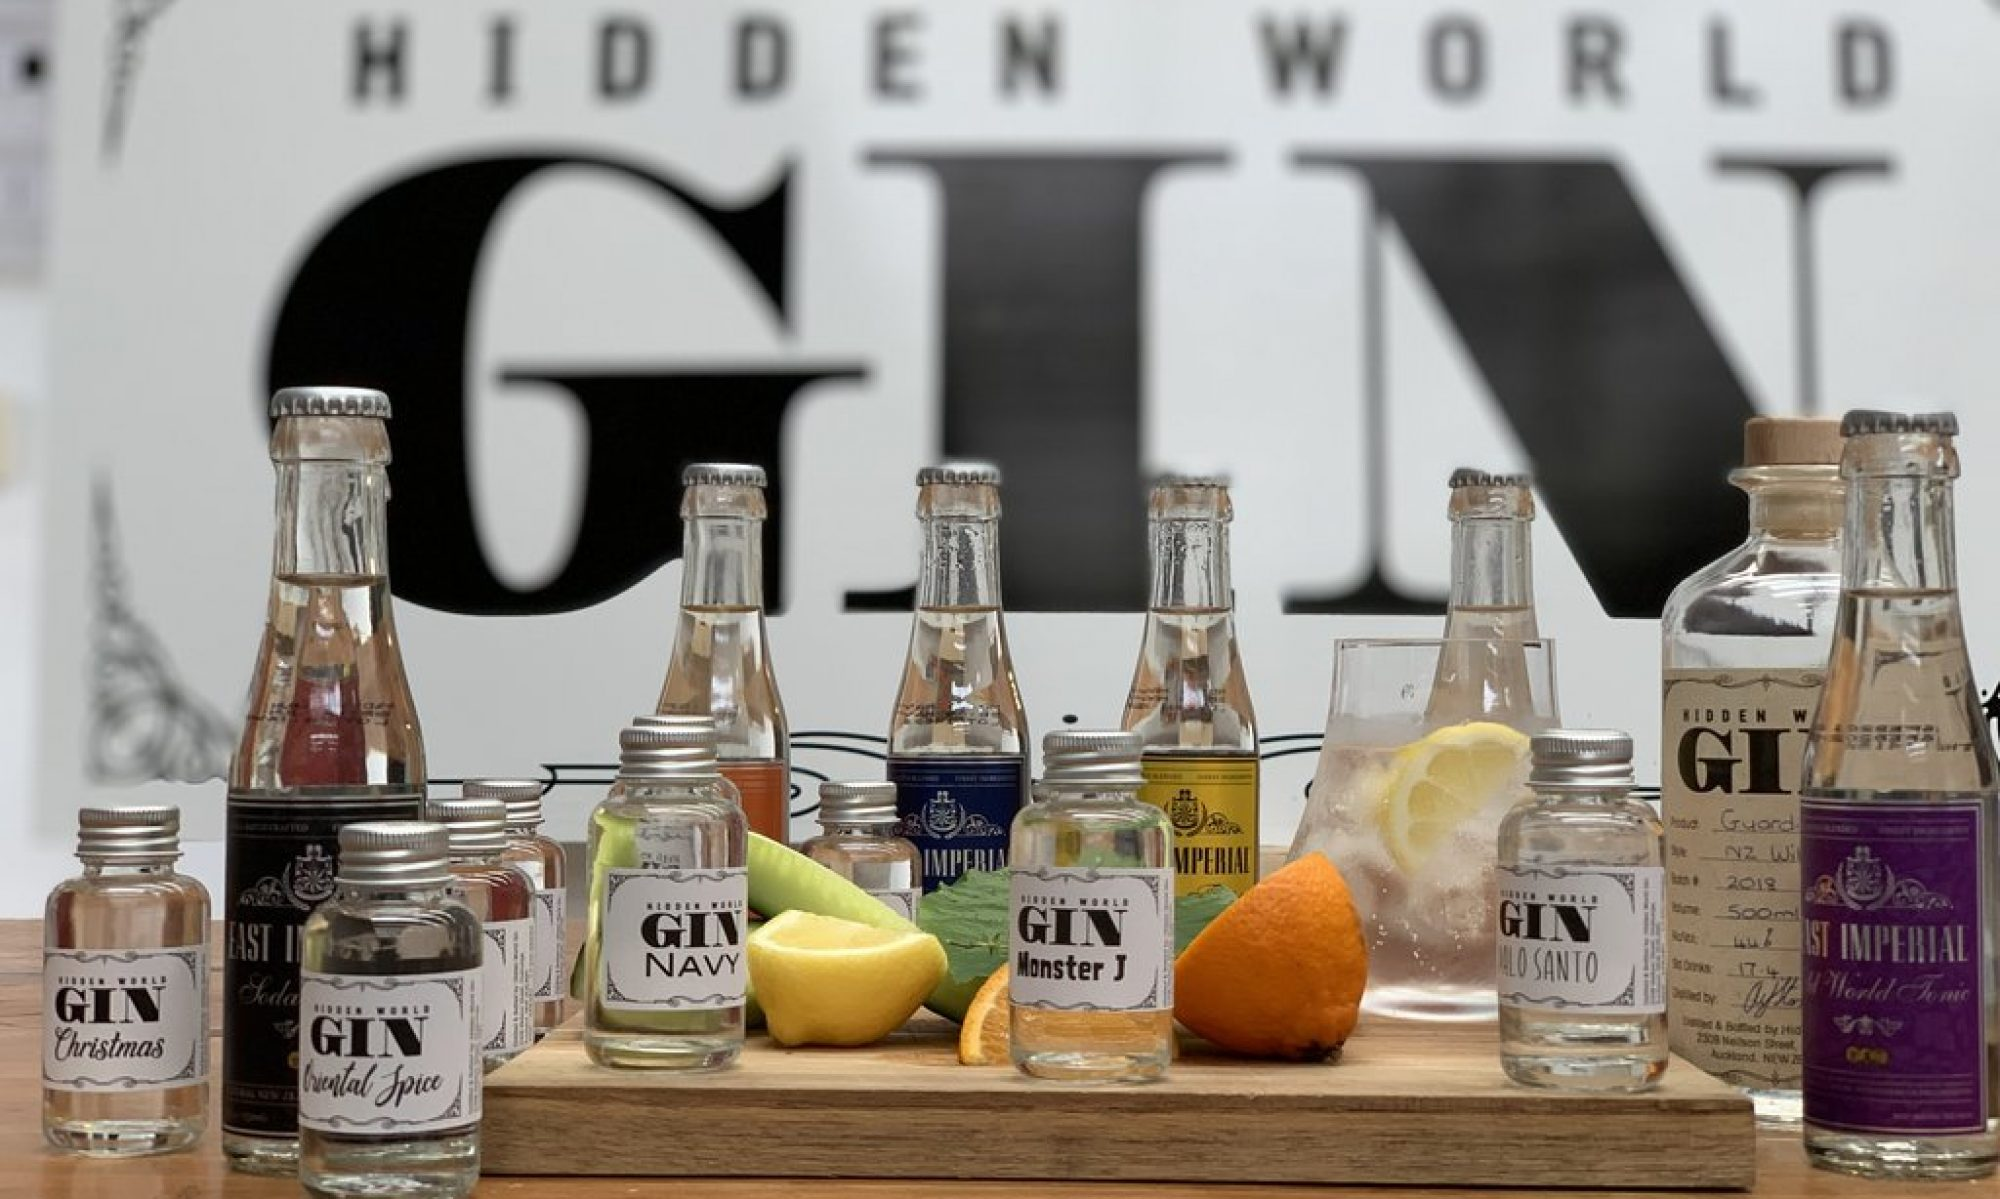 Hidden World Gin